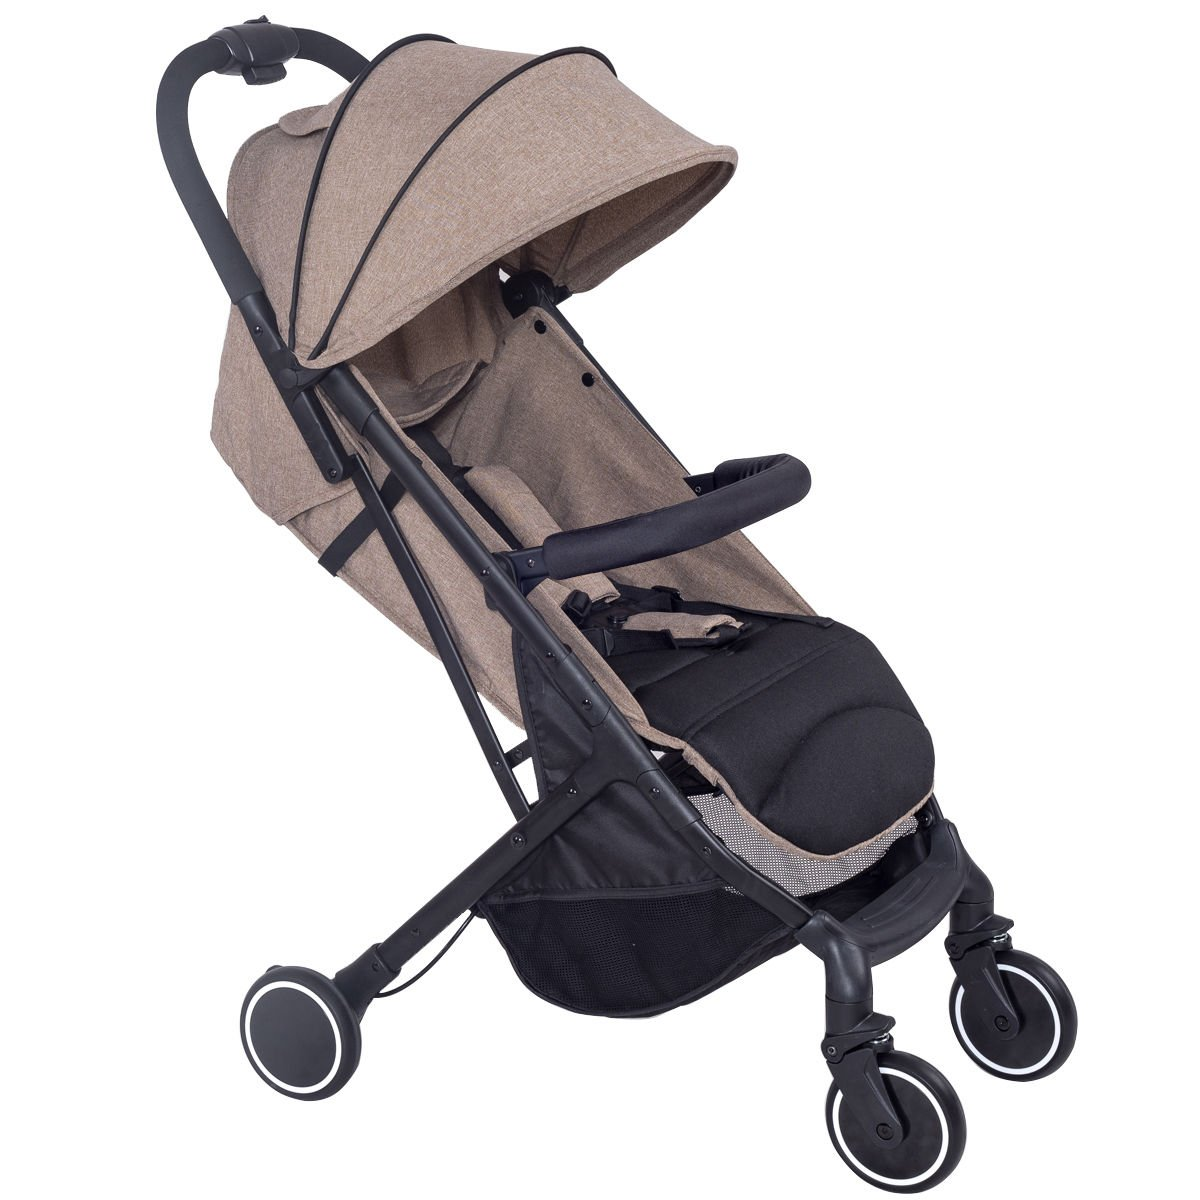 Costzon Lightweight Stroller with 5-Point Safety System and Multi-Positon Reclining Seat (Coffee)